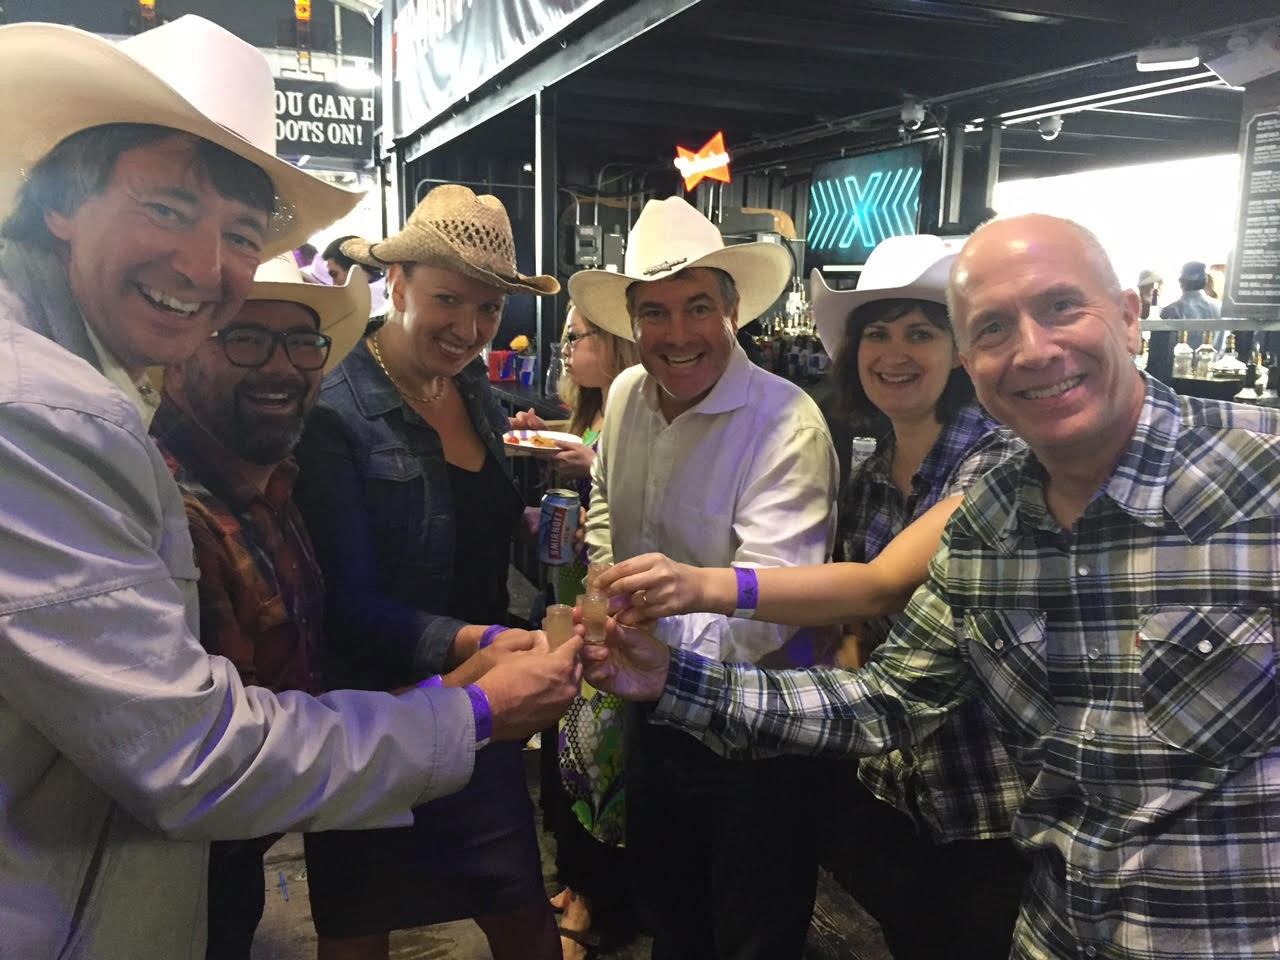 Calgary Stampede party - The OKR Team celebrated the launch of OKR III at our Calgary Stampede party! From the left to right; Jason Neale, Douglas Saxon, Nancy Bacon, Randy Thompson, Amanda Needham and Bill Green.